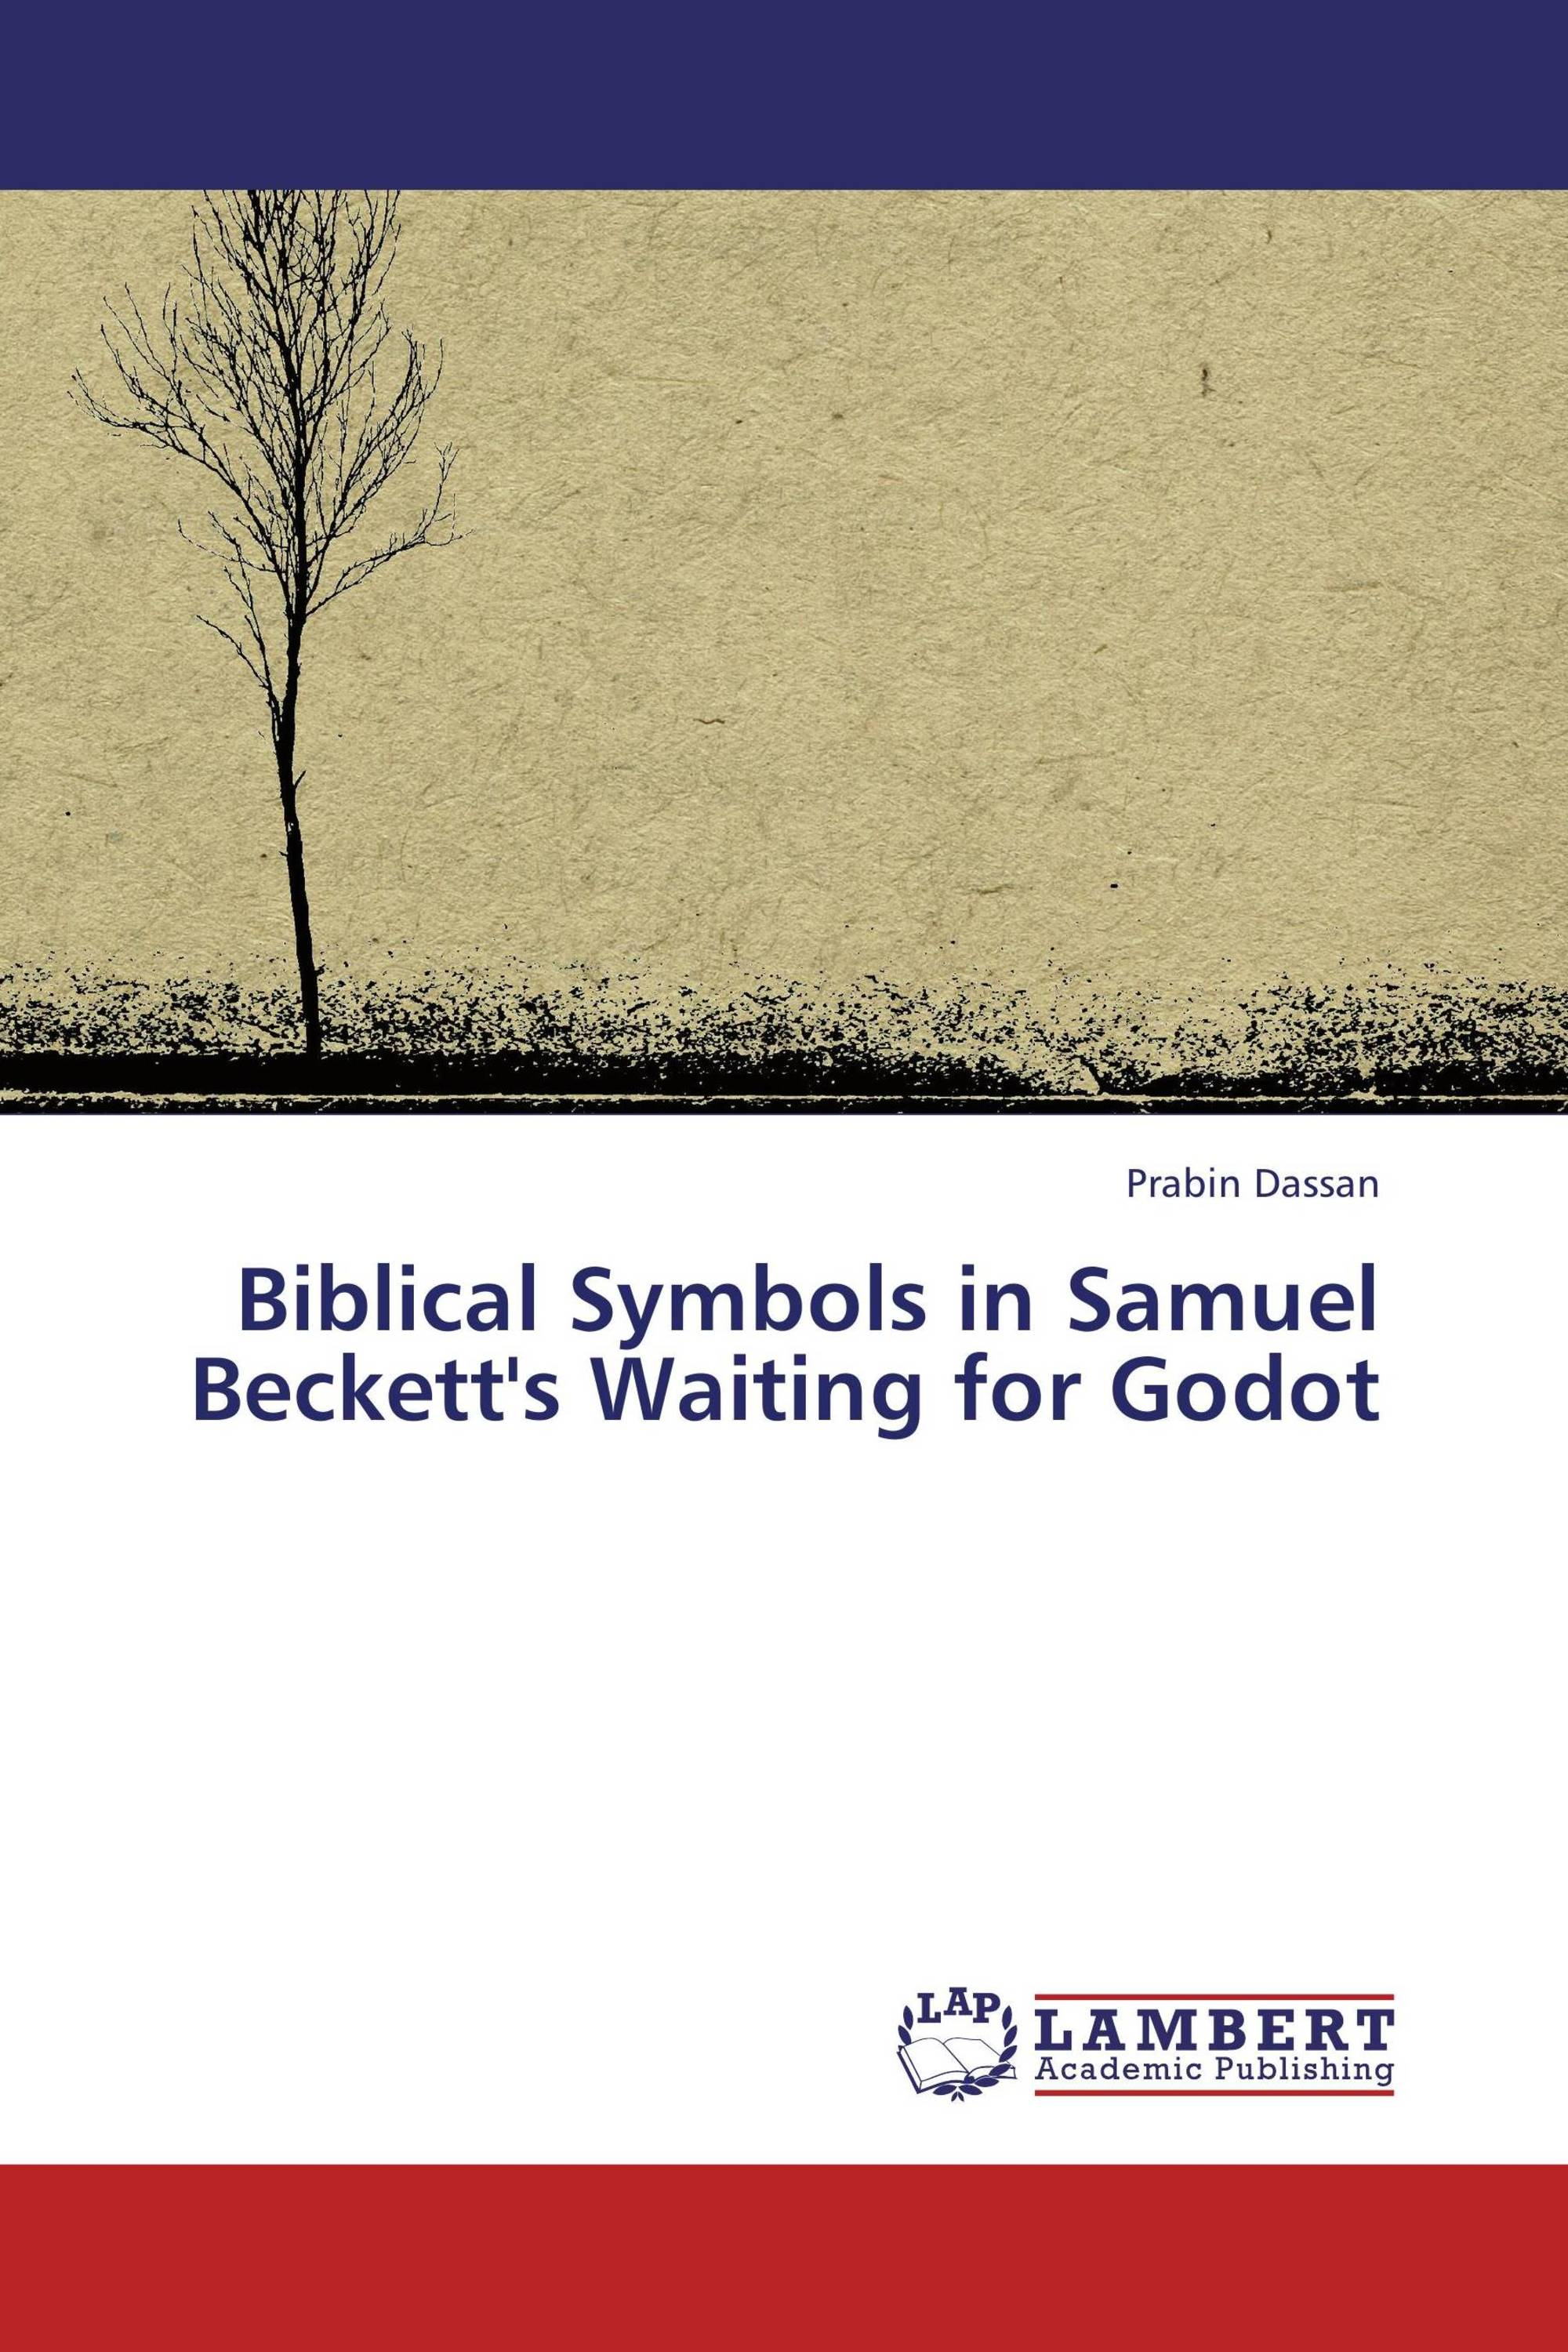 waiting for godot symbolism essay